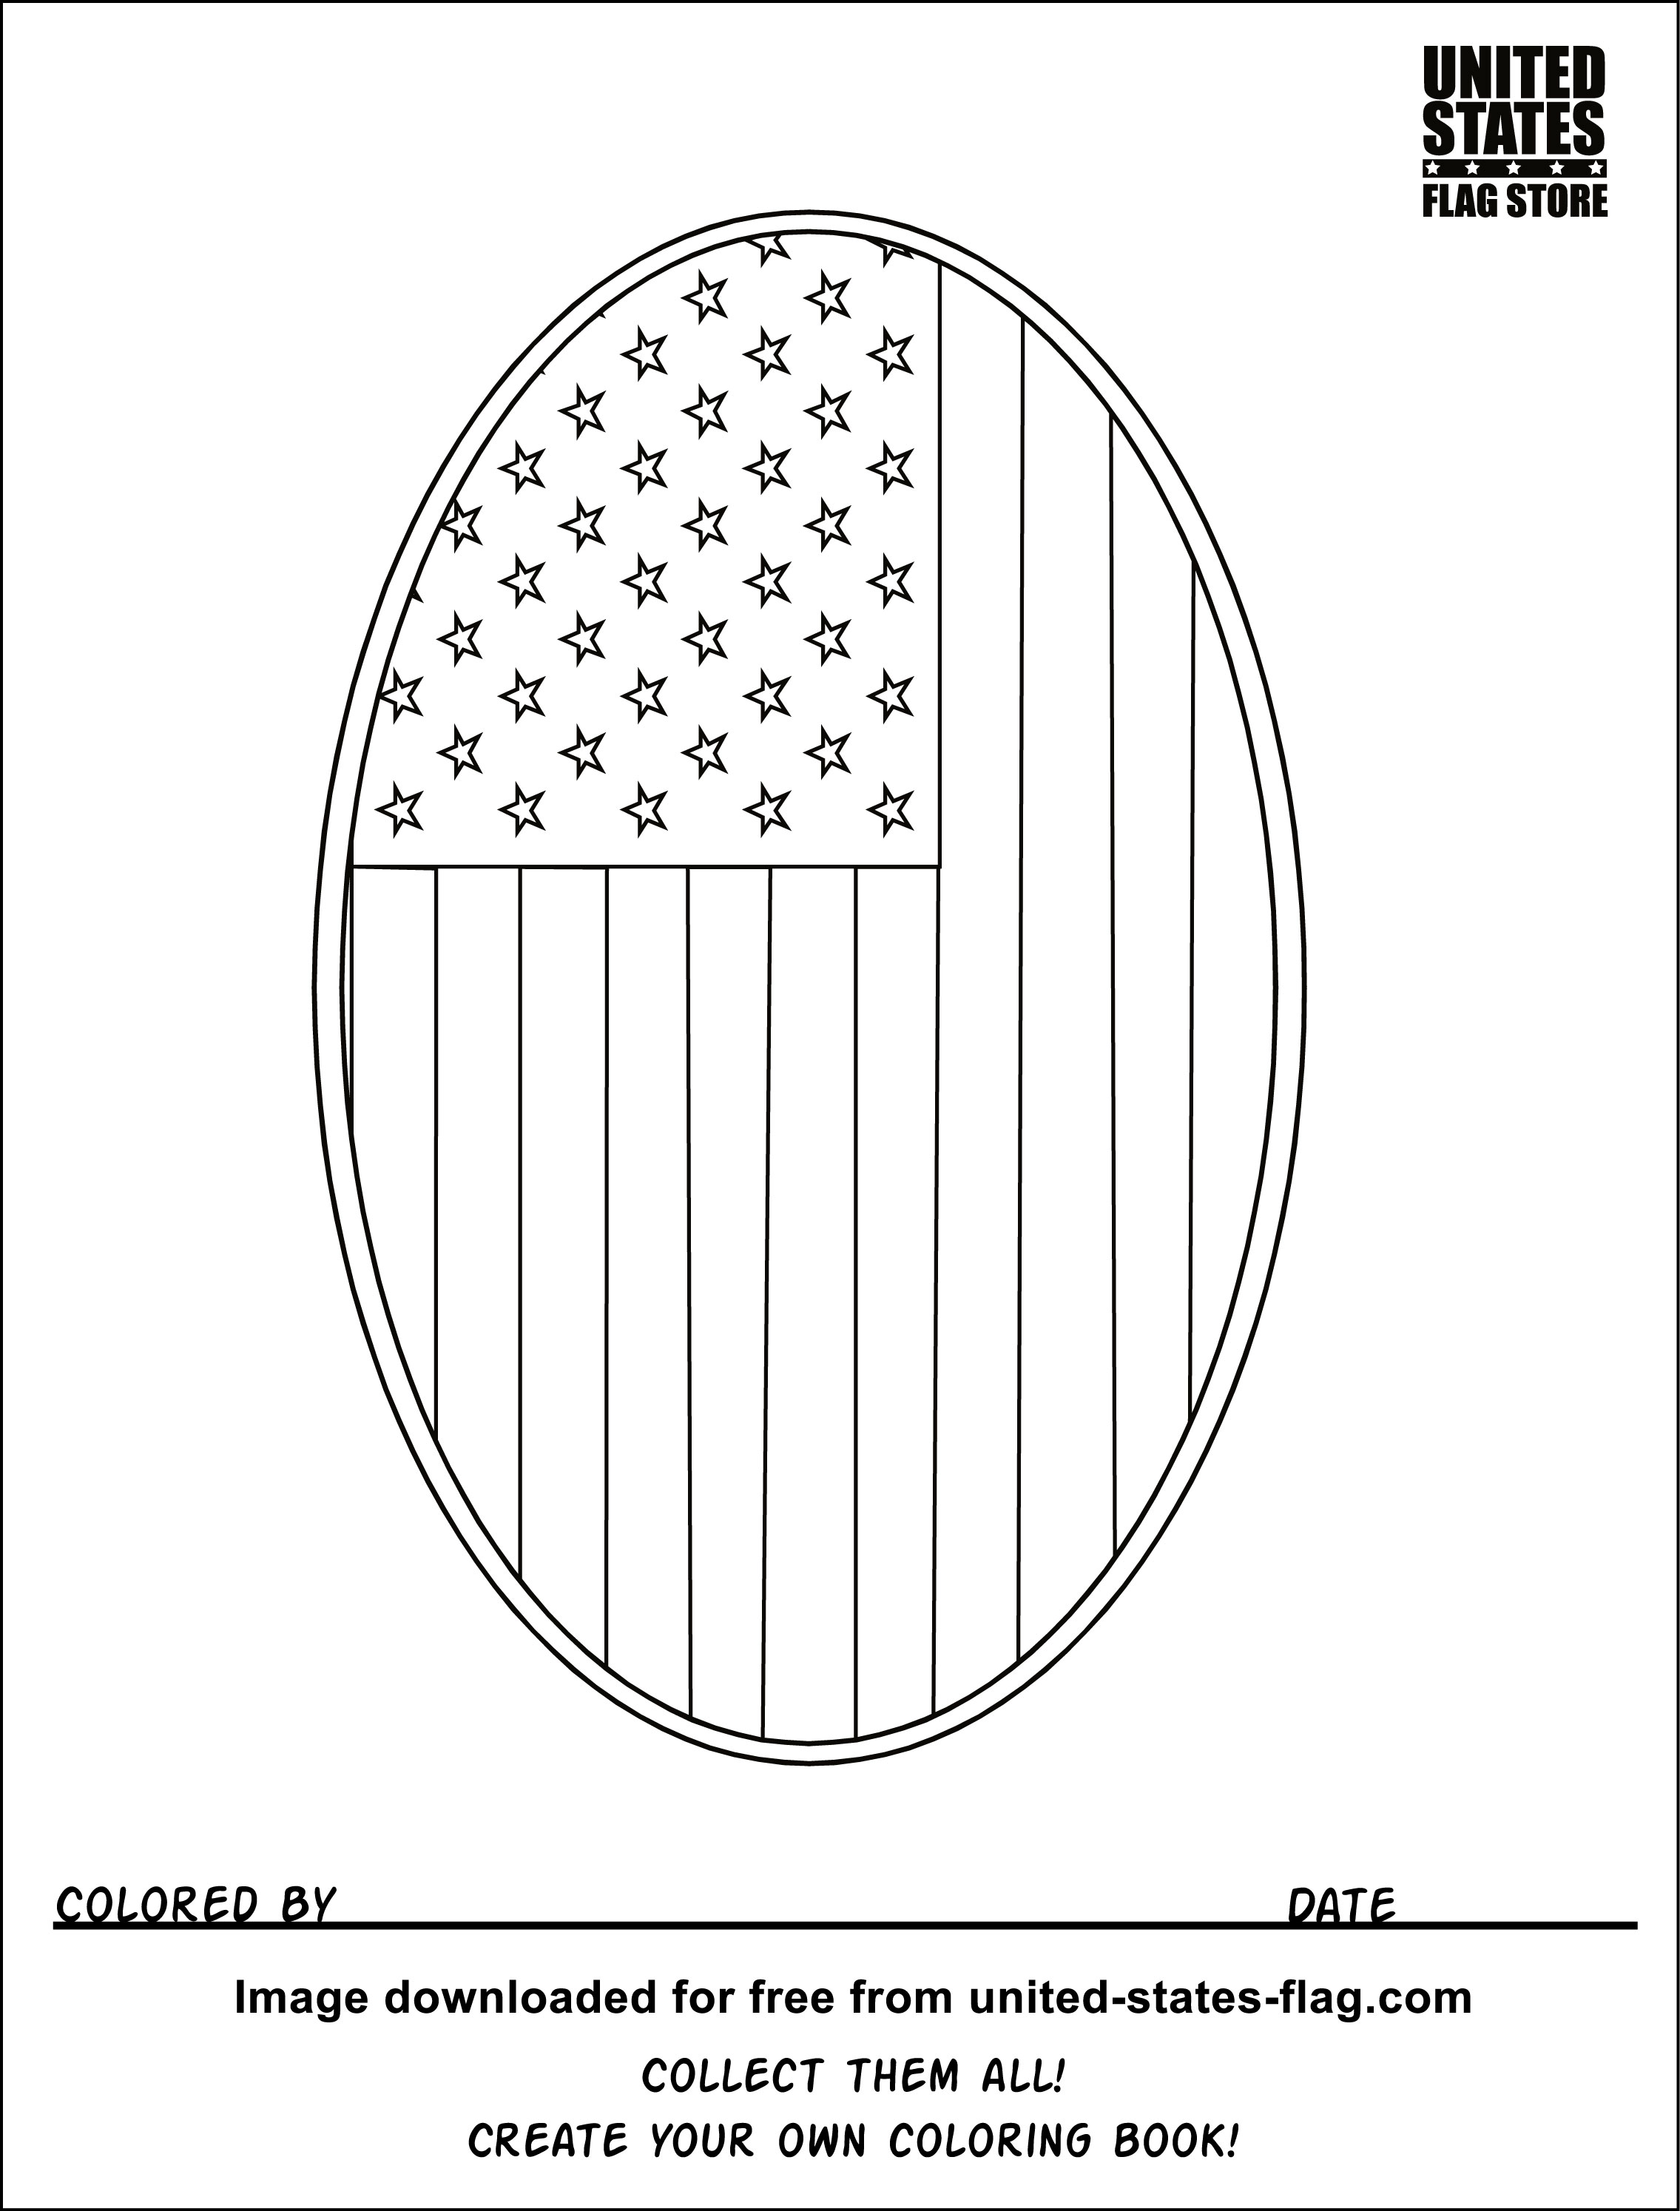 free american flag coloring pages buy us flags amp flagpoles atrevolutionary war flag coloring page